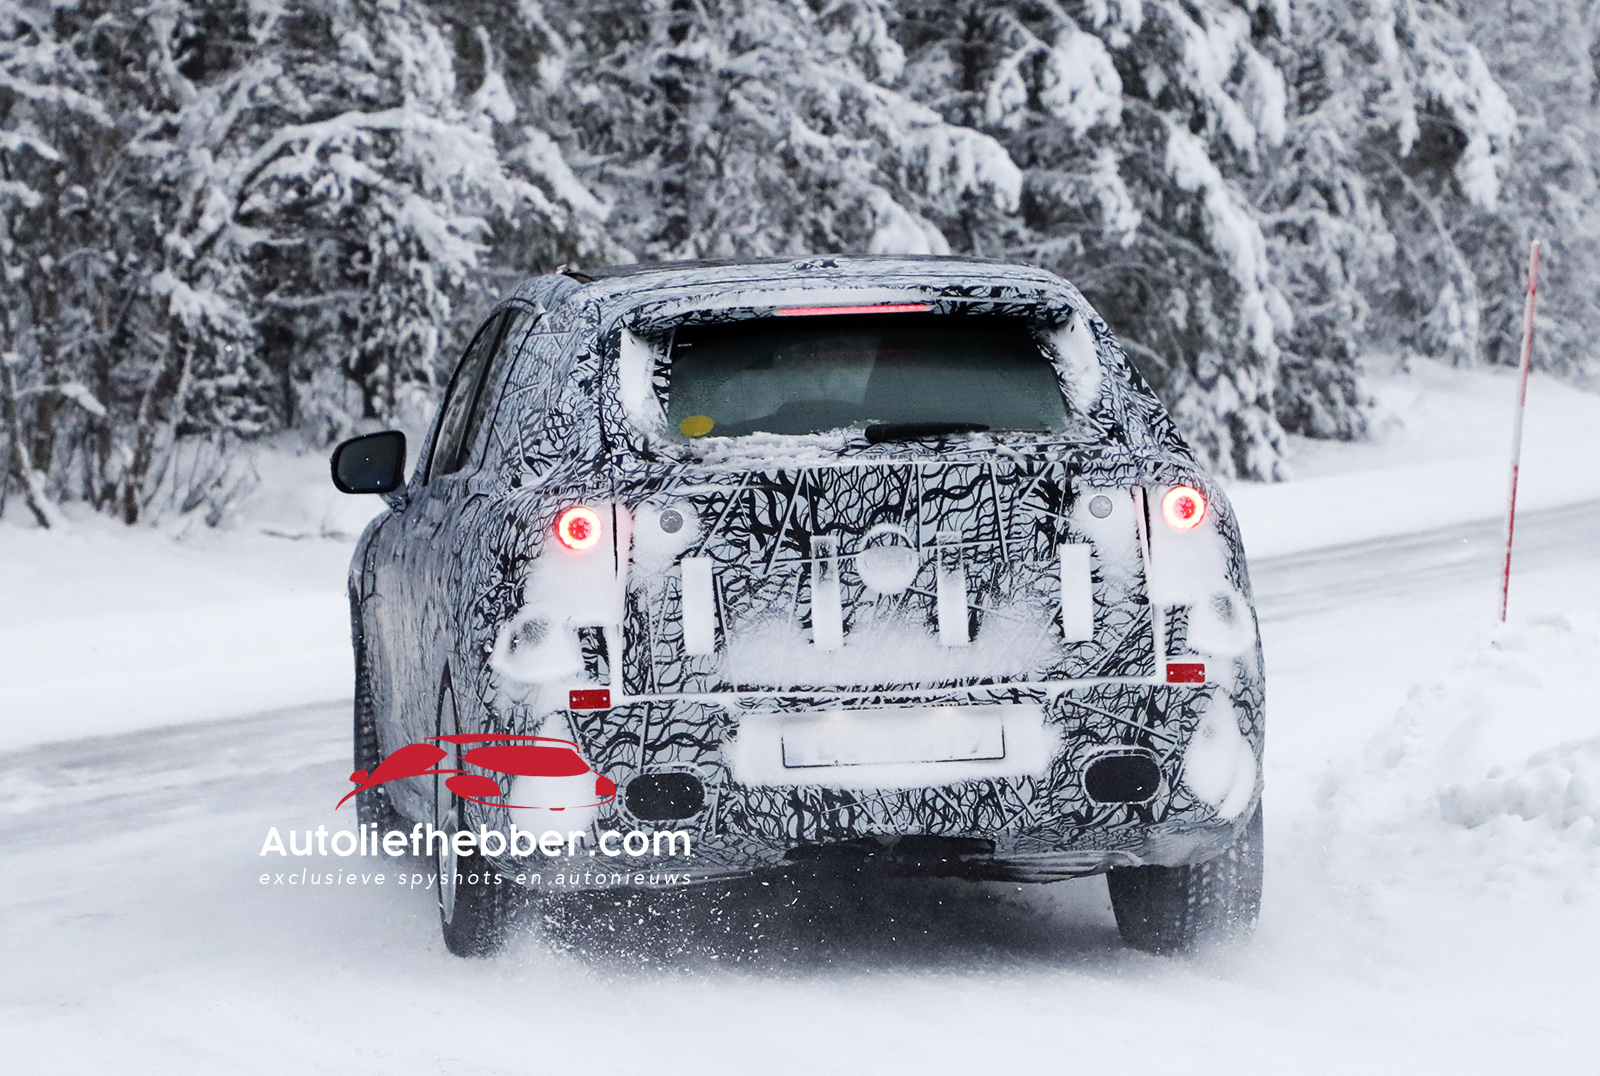 Wintertest voor Mercedes SUV EQS